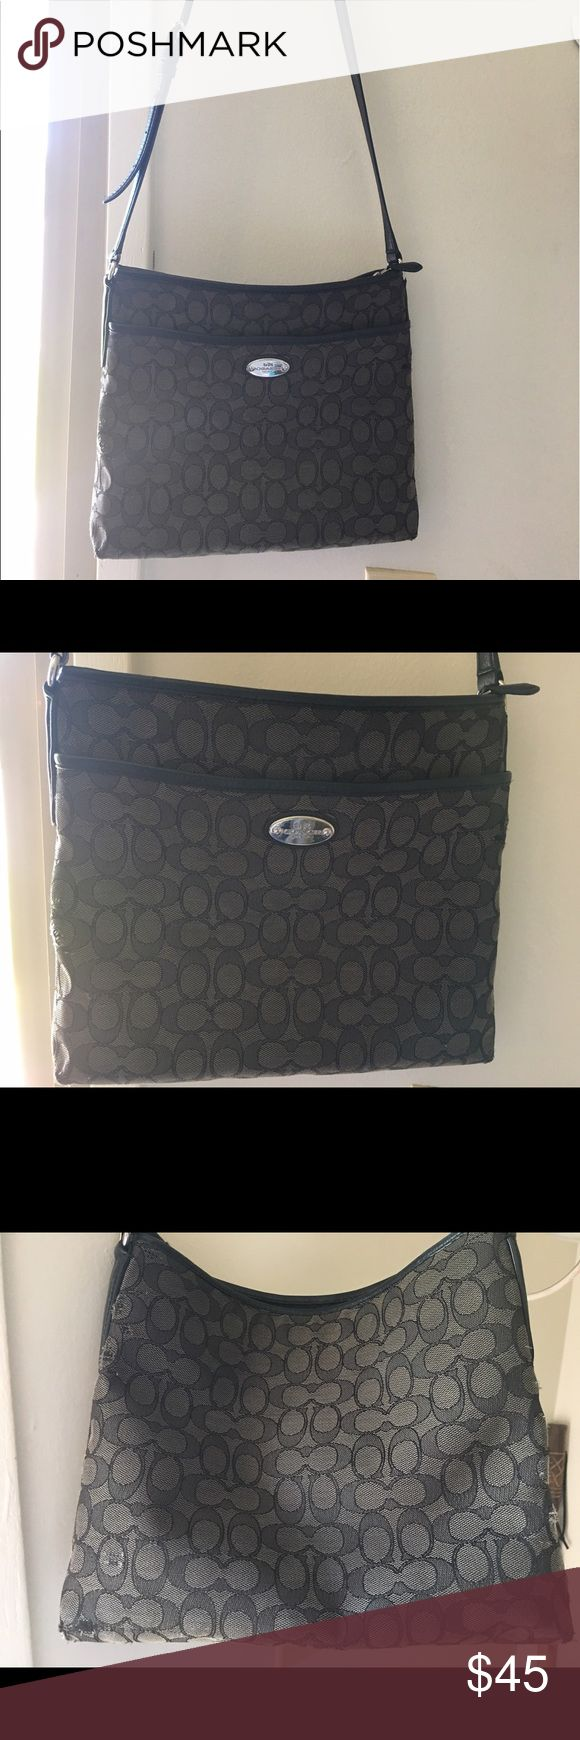 Coach purse Black coach purse, used has some wear n tear on sides and slightly on bottom as shown in pictures. Zipper inside with two pockets very clean no holes Zips close and has a outside pocket . Coach Bags Crossbody Bags